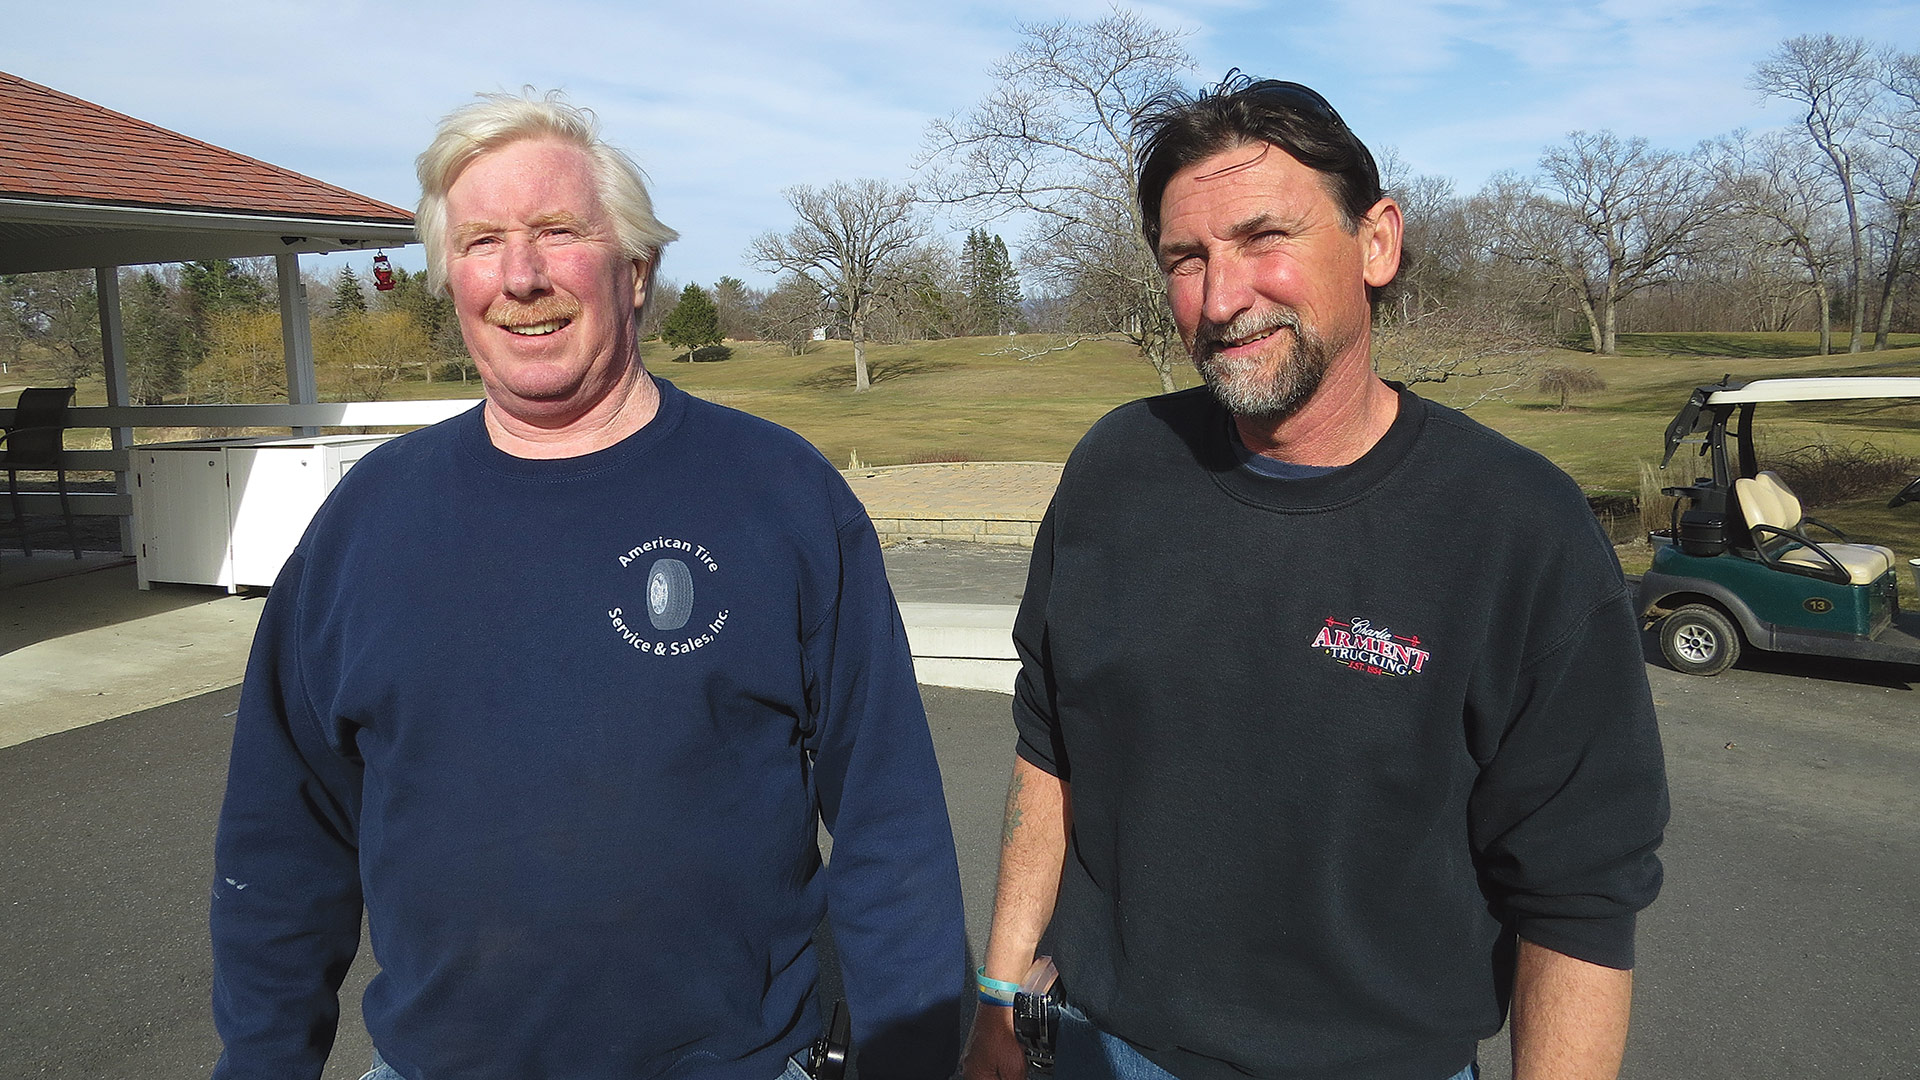 Bob VanZandt and Charlie Arment stand near a new patio that will soon be built at Wyckoff.